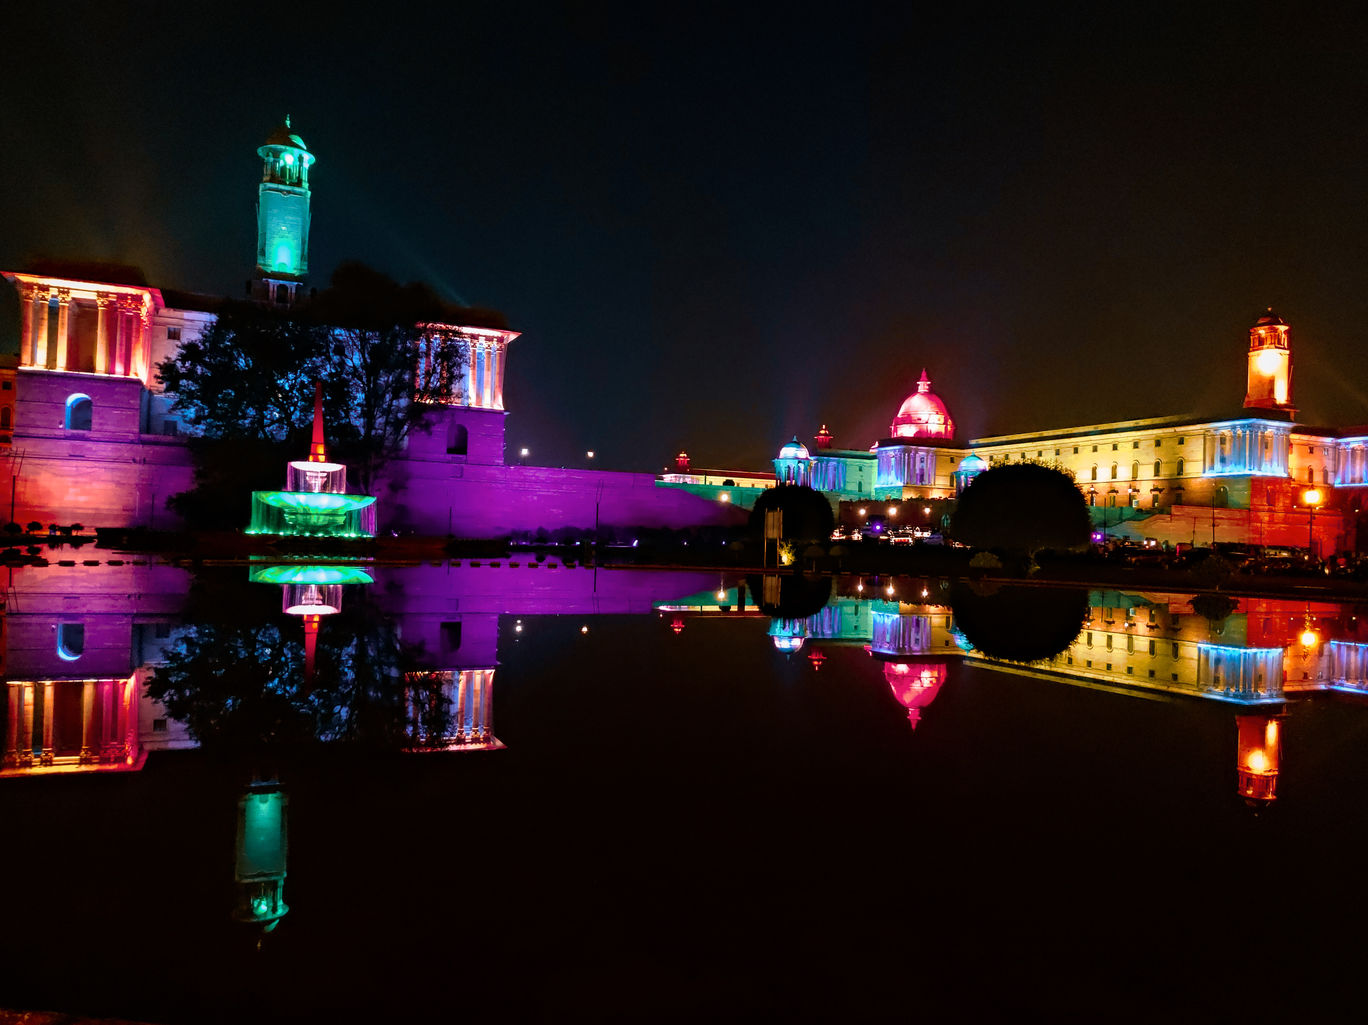 Photo of Raisina Hills By Rajdip Dey